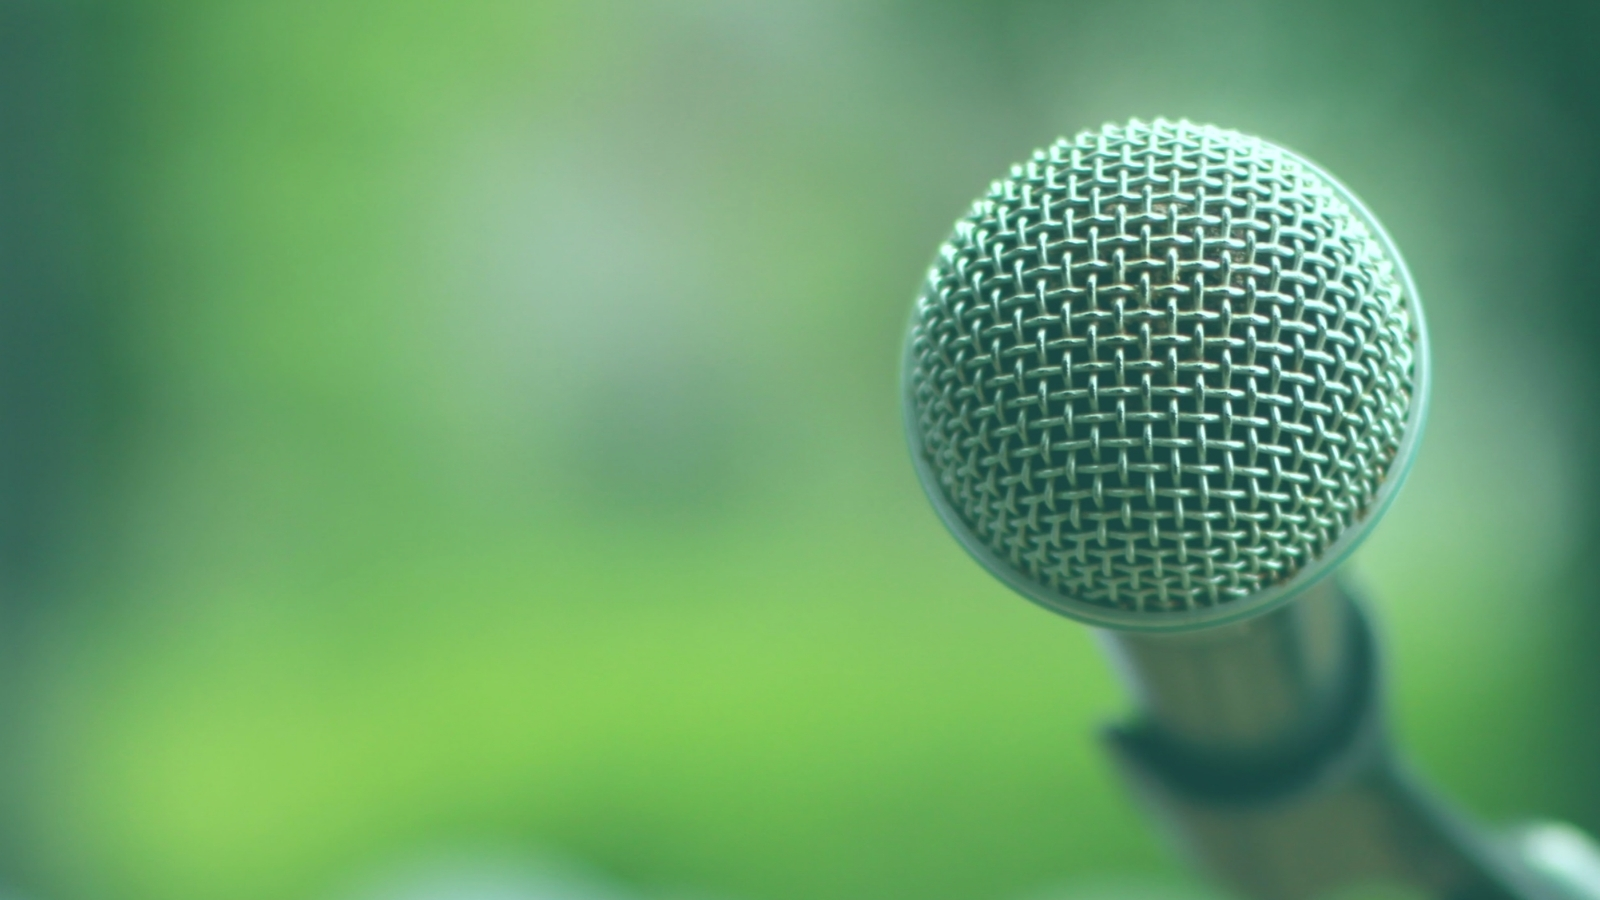 A microphone with a green, outdoor background in Spoken Garden's Diy Garden Podcast advertisement